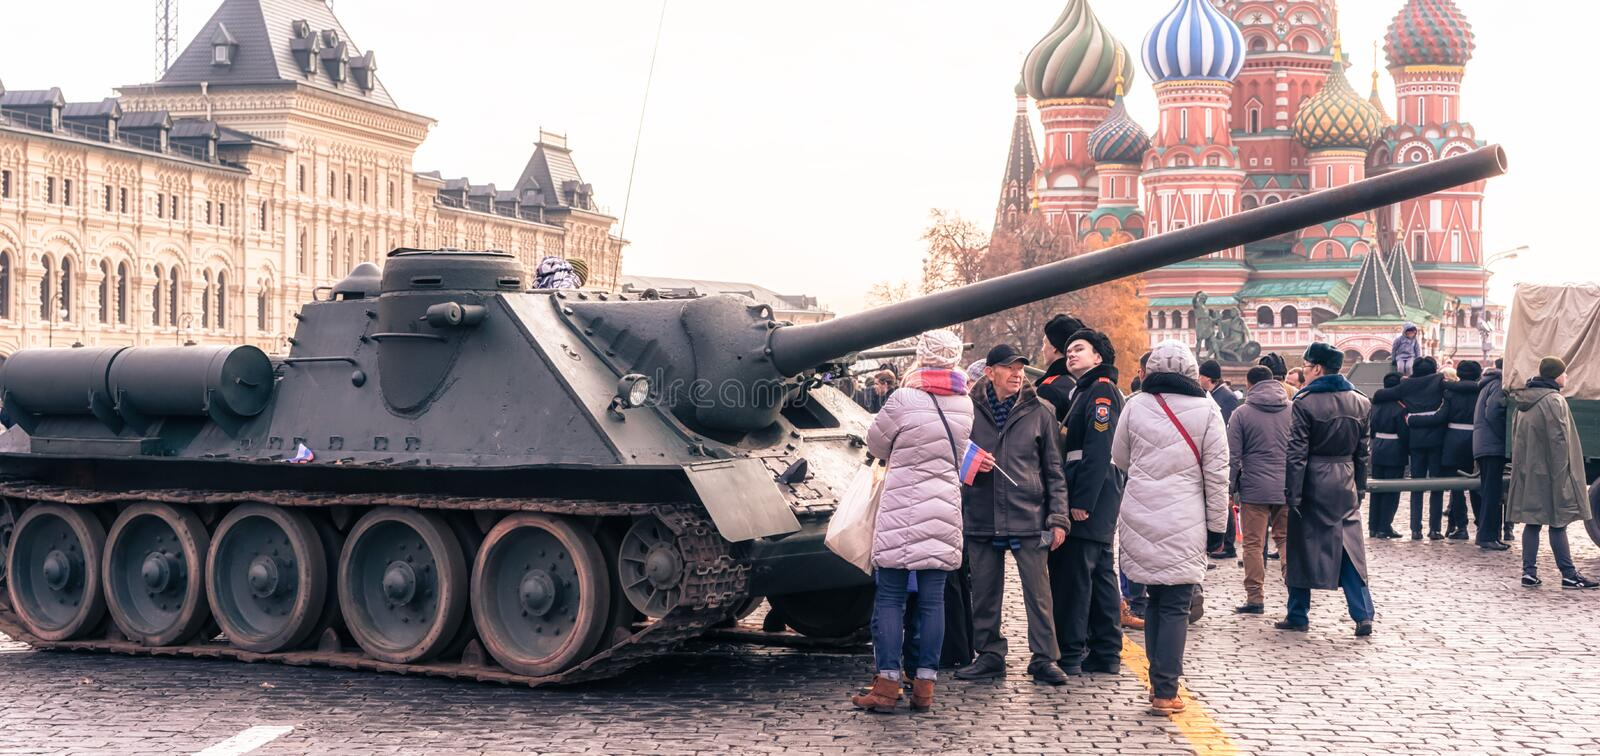 People watch retro tank world war ii on the Red Square. Moscow, Russia - November 7, 2018: people watch retro tank world war ii on the Red Square stock photo